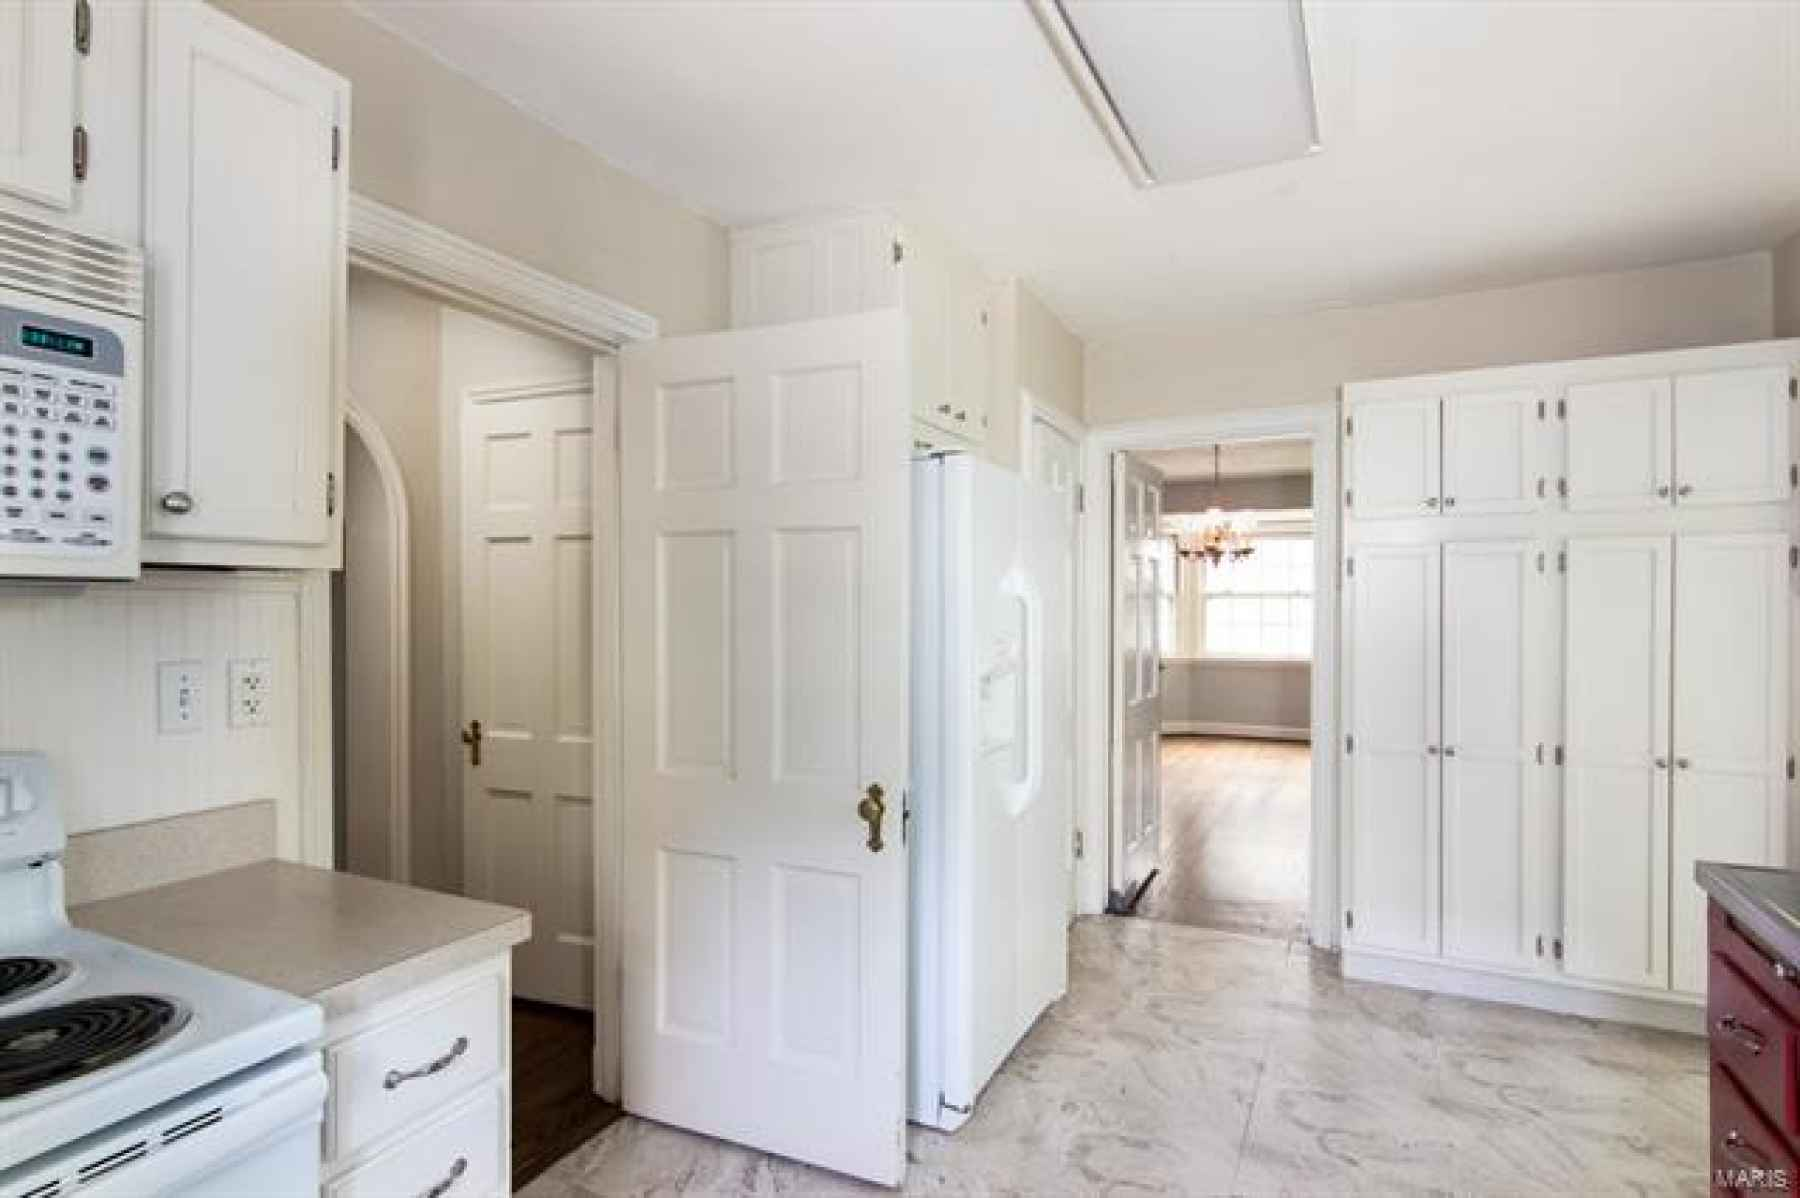 Plenty of Storage with a Pantry to the Right of the Refrigerator - OR, open wall and hallway closet to enlarge kitchen and open into the dining room.